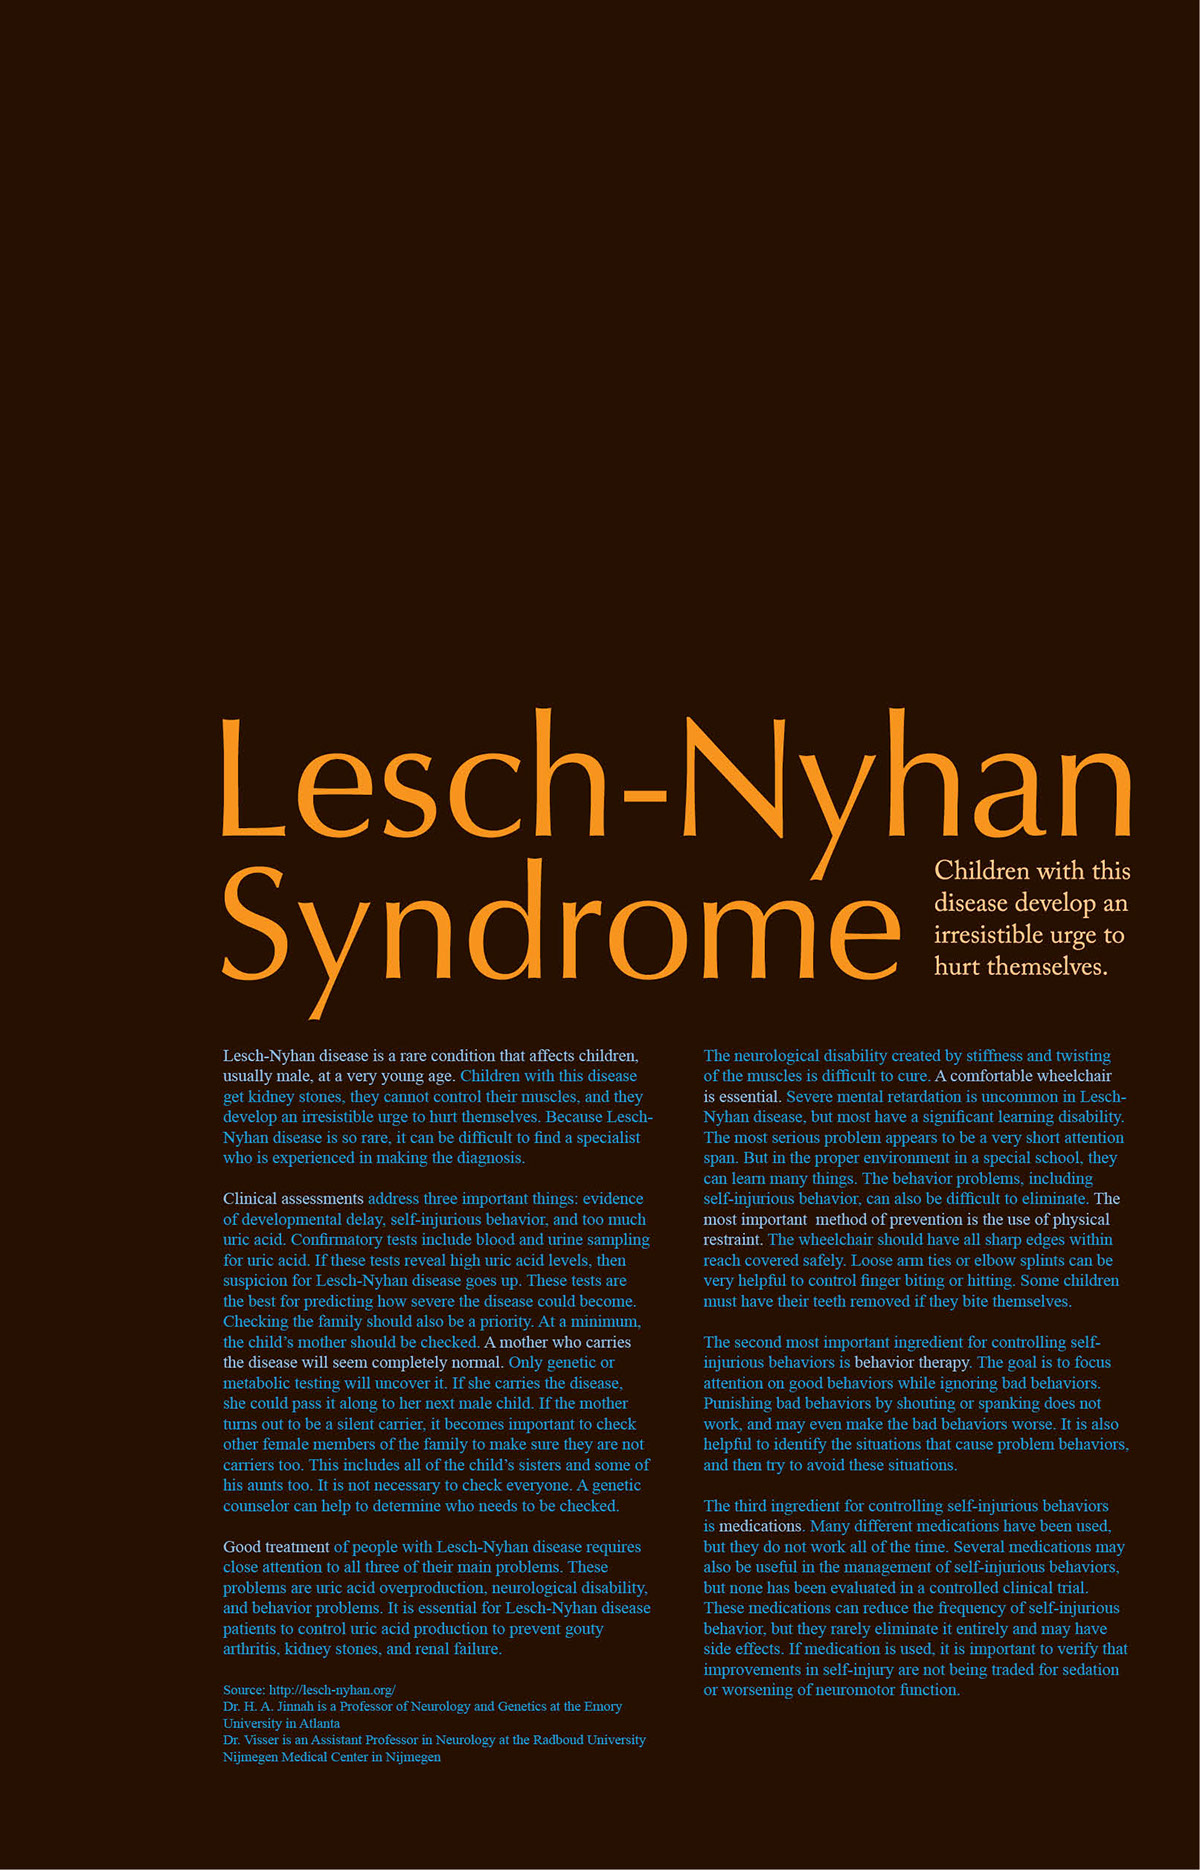 lesch nyhan syndrome research paper Institutional login login register activate.